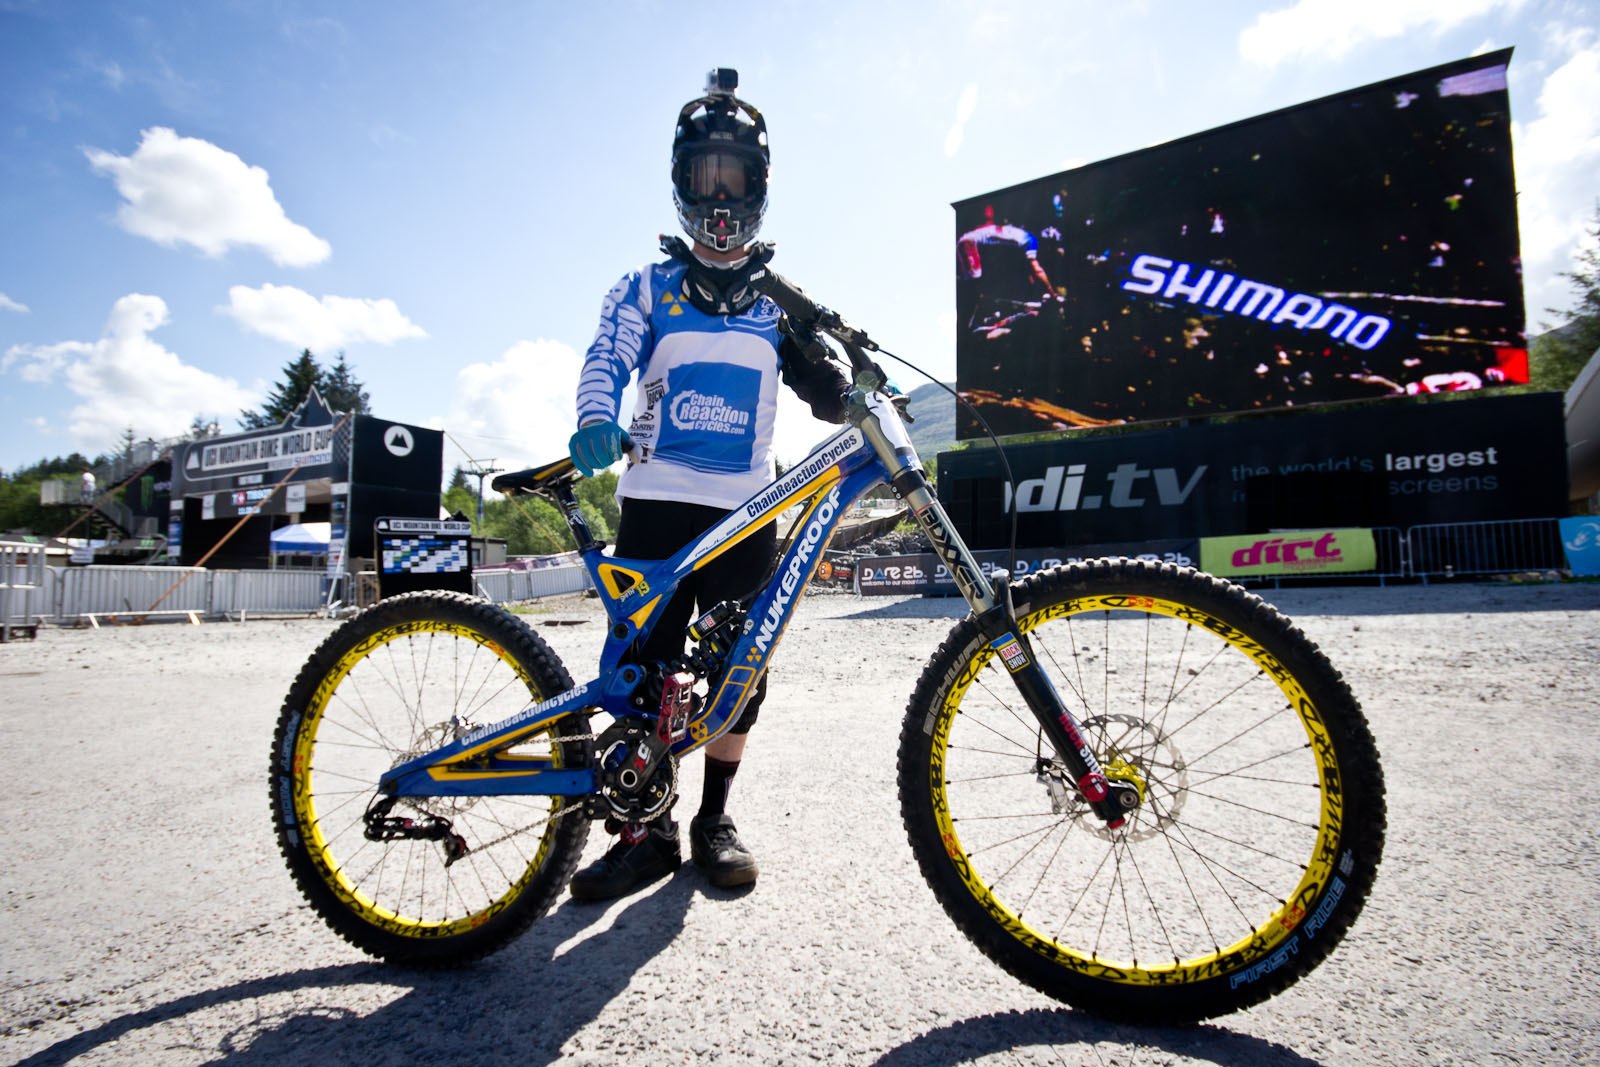 Joe Smith's Nukeproof Pulse - 24 Pro DH BIkes from Fort William World Cup - Mountain Biking Pictures - Vital MTB